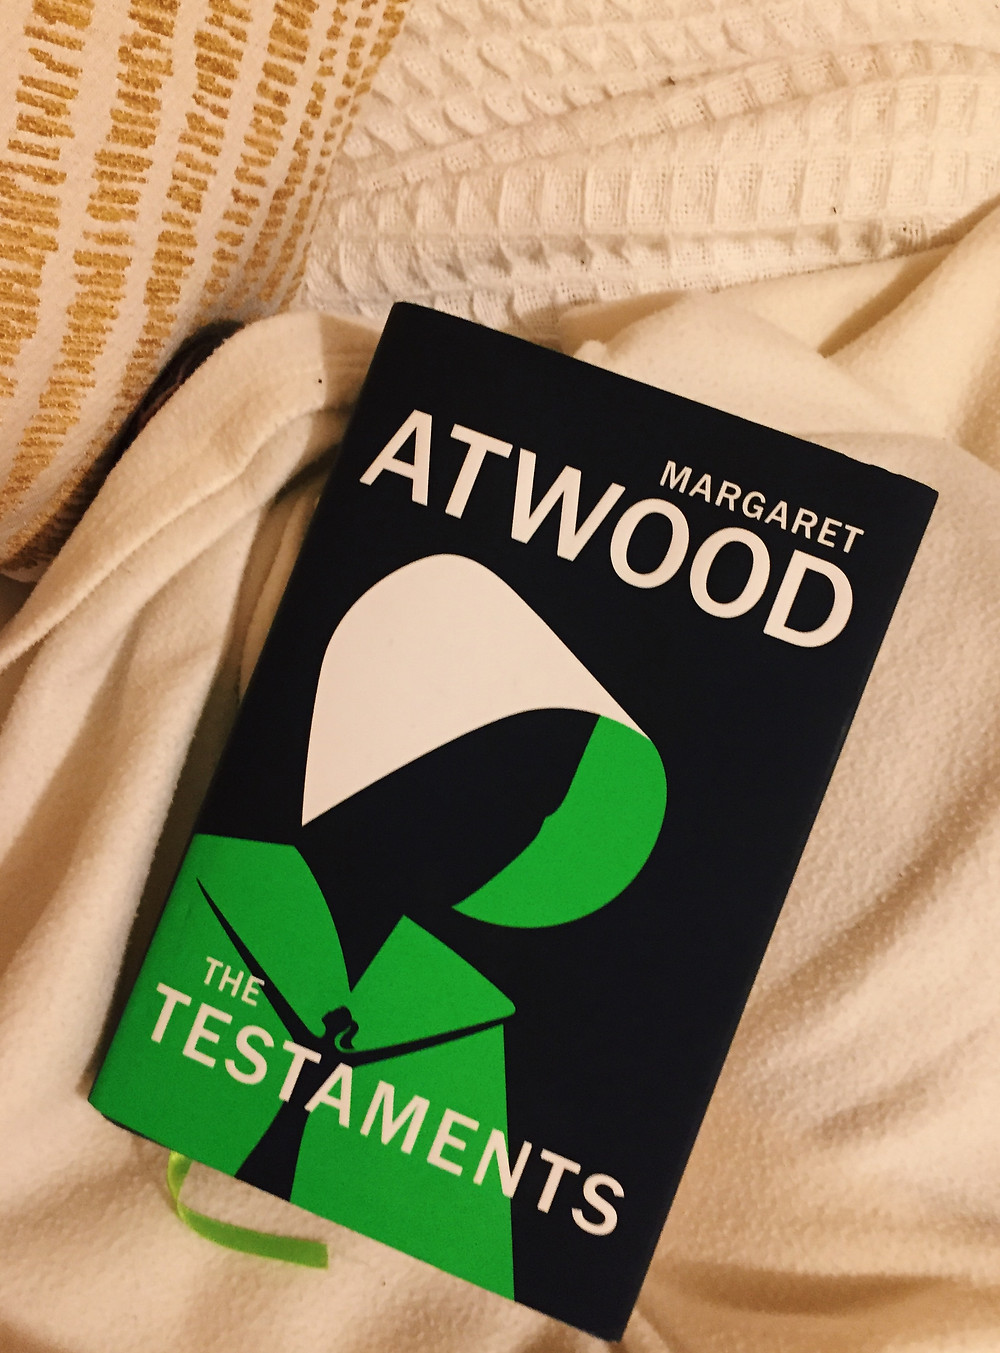 The Testaments by Margaret Atwood Book Cover